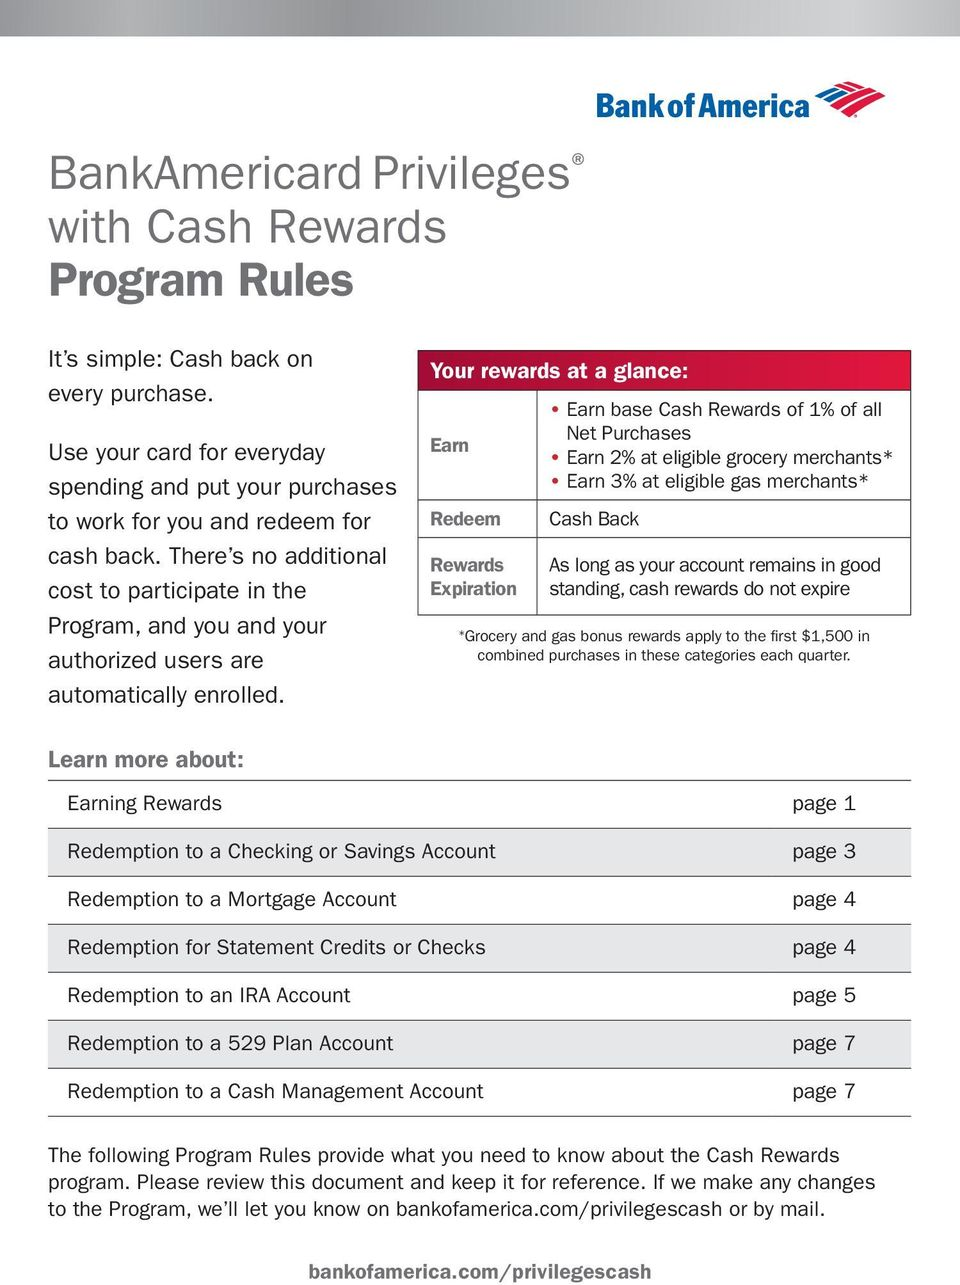 Your rewards at a glance: Earn Redeem Rewards Expiration Earn base Cash Rewards of 1% of all Net Purchases Earn 2% at eligible grocery merchants* Earn 3% at eligible gas merchants* Cash Back As long